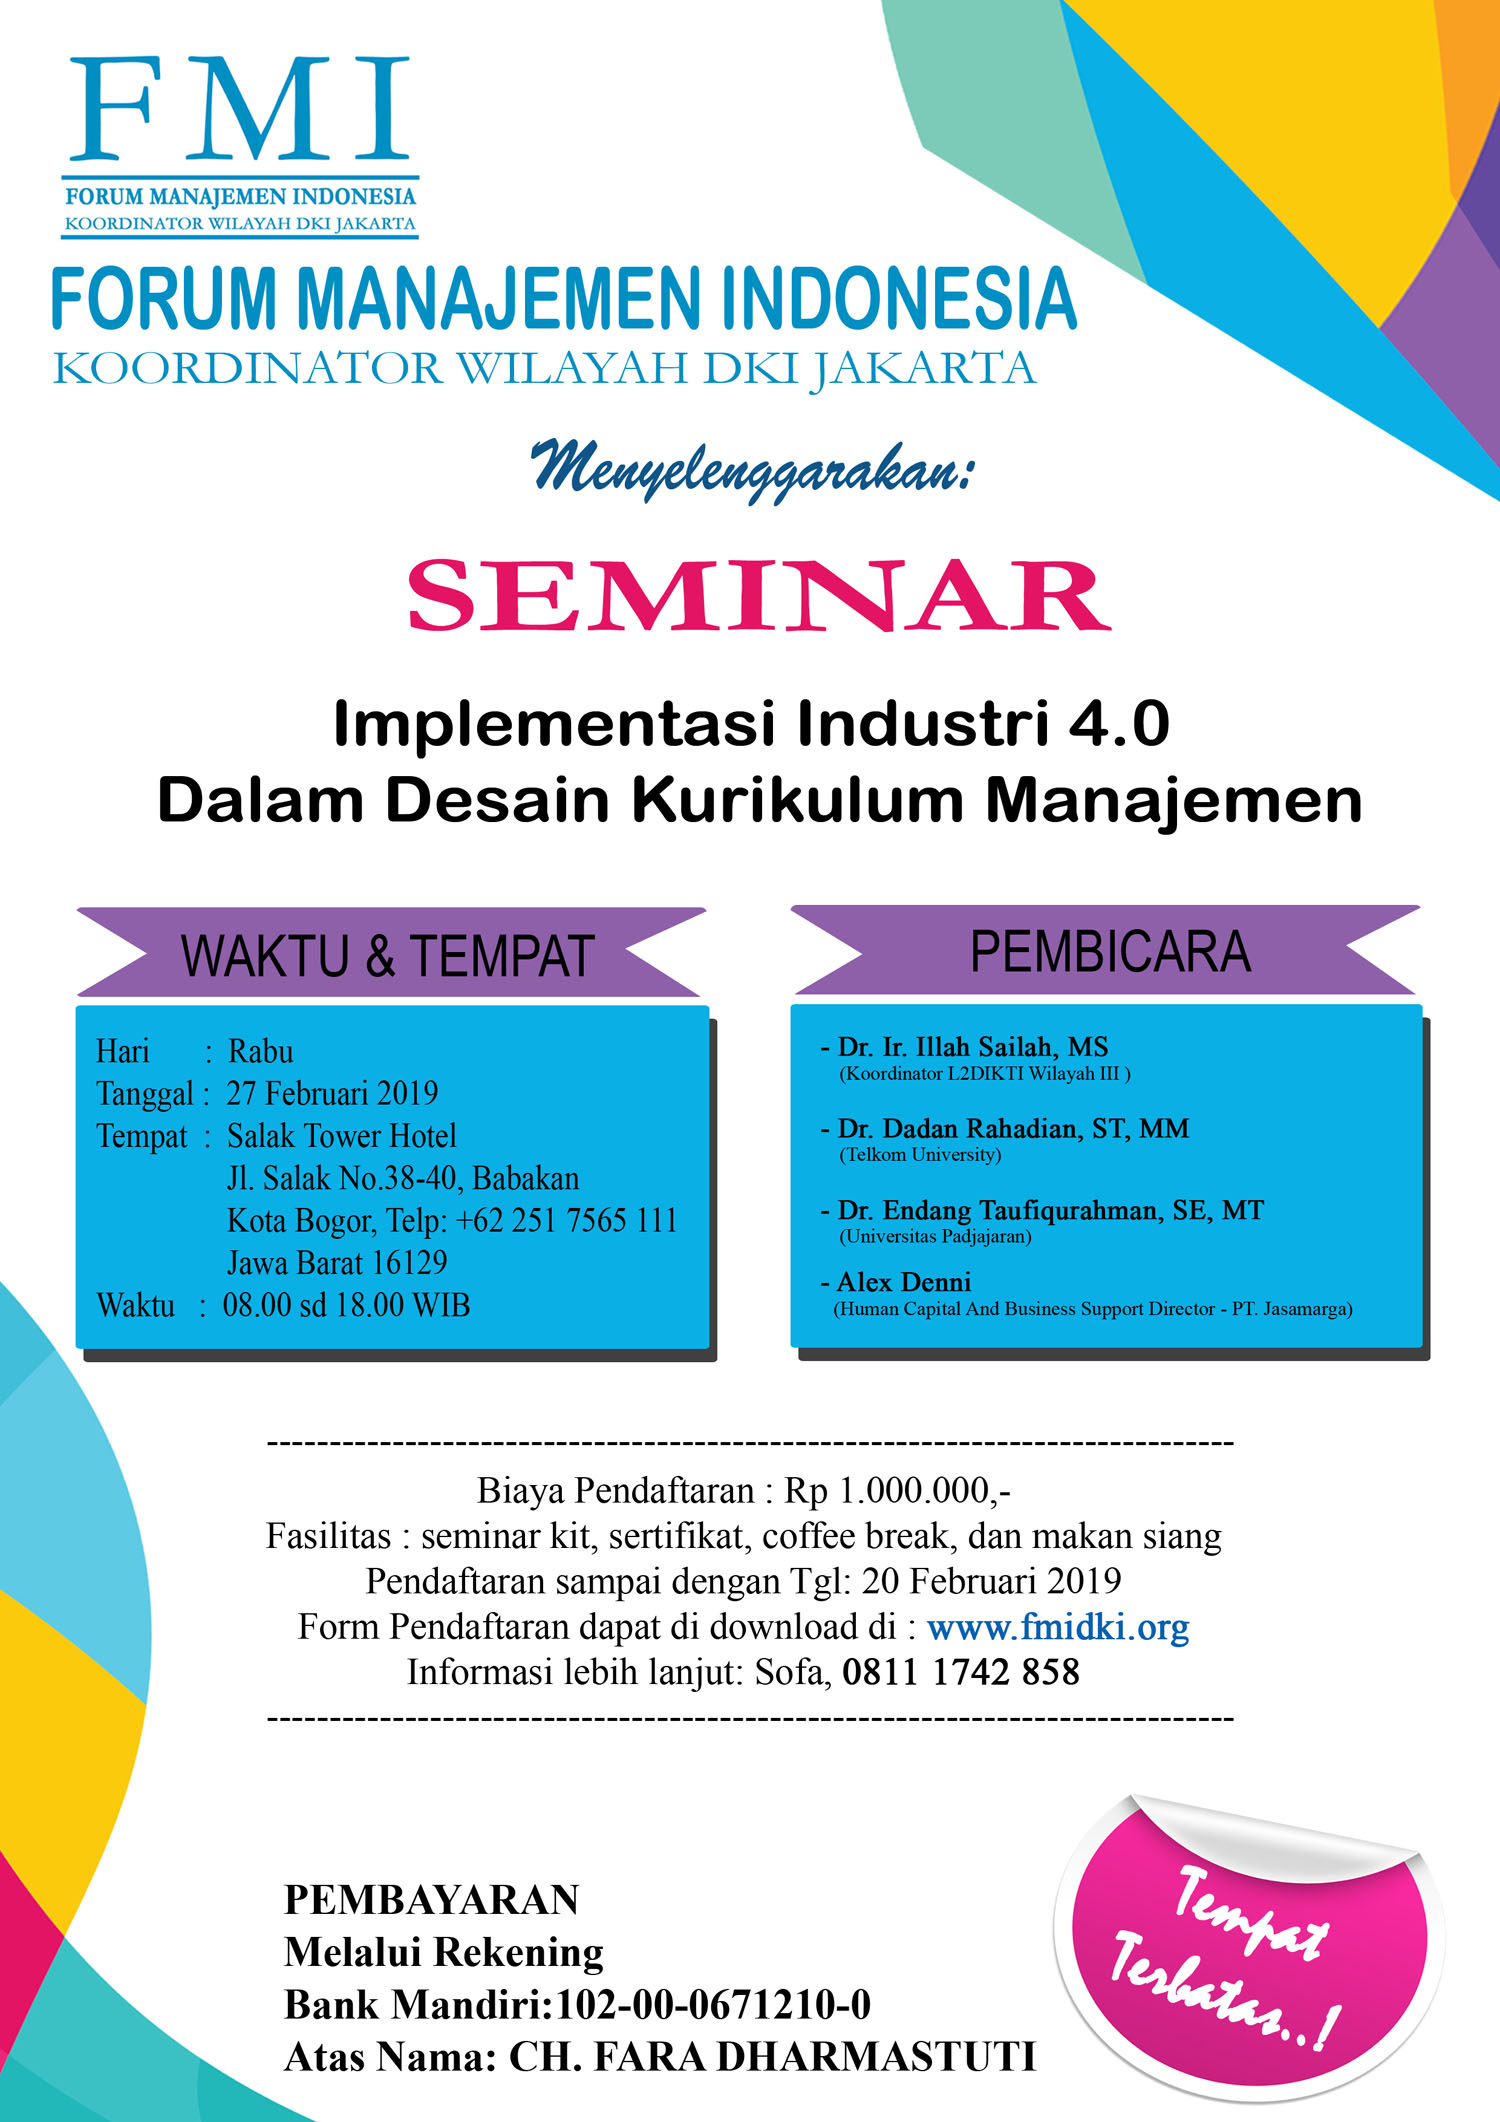 POSTER Seminar Implementasi Industri 4.0